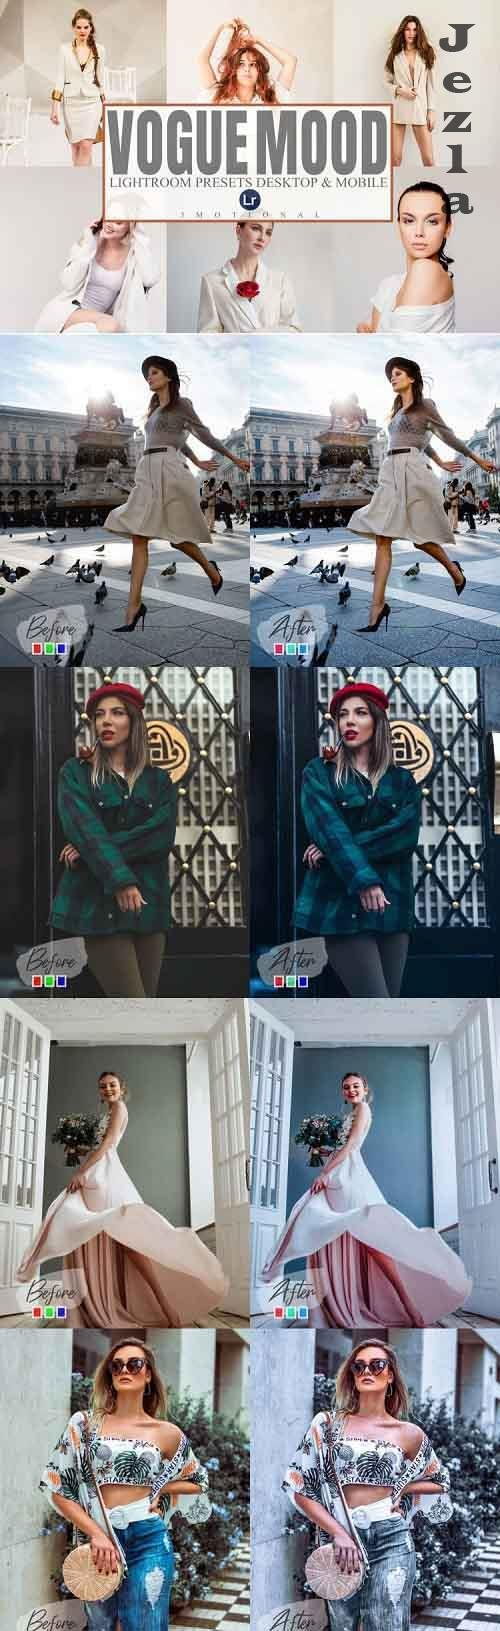 7 Vogue Mood Photoshop Actions, ACR, LUT Presets - 883376